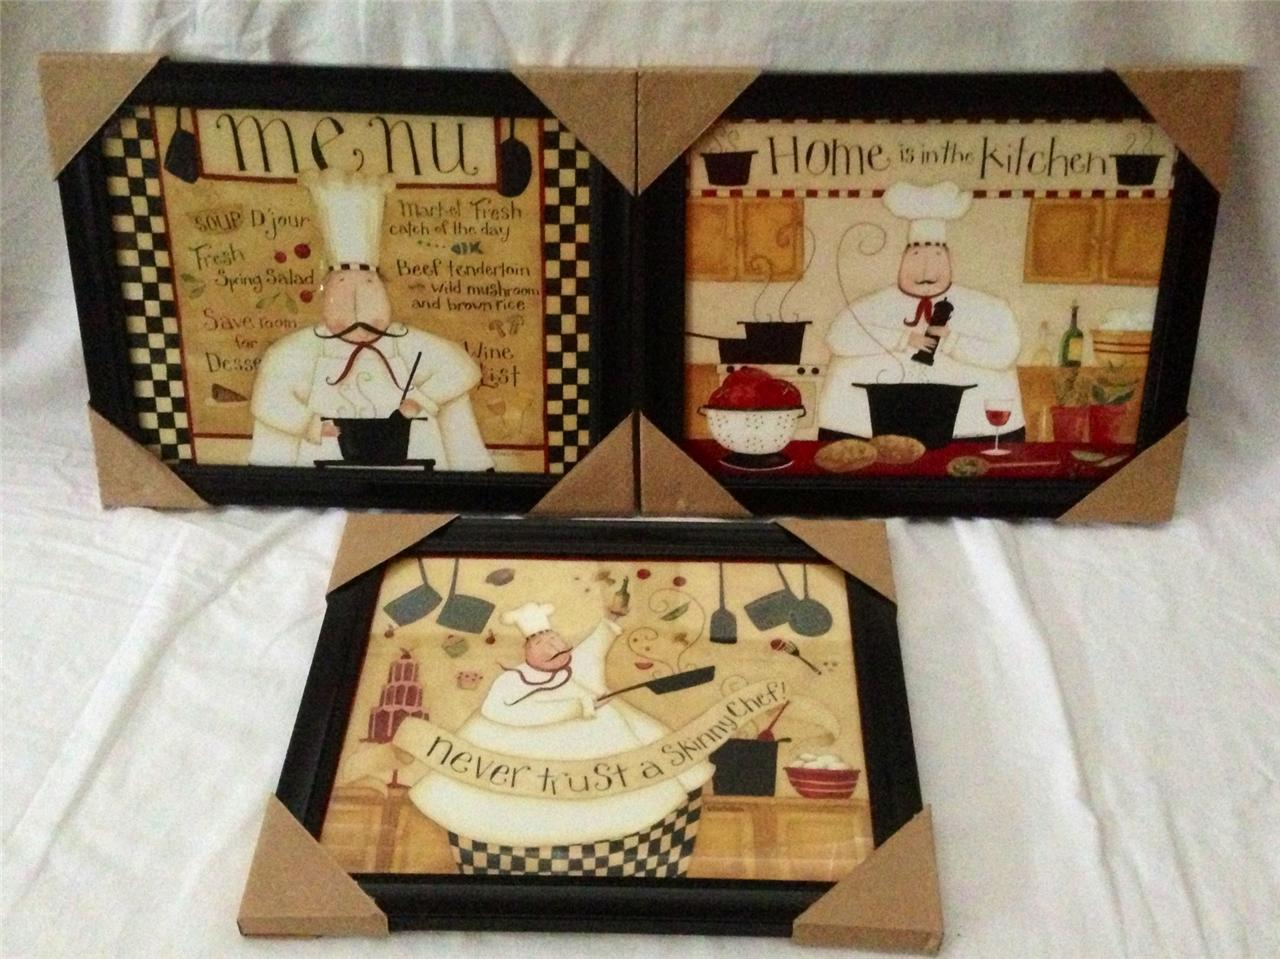 http ebay com itm fat chef italian bistro cafe home kitchen interior plaque picture lot decor - Italian Kitchen Decorating Ideas